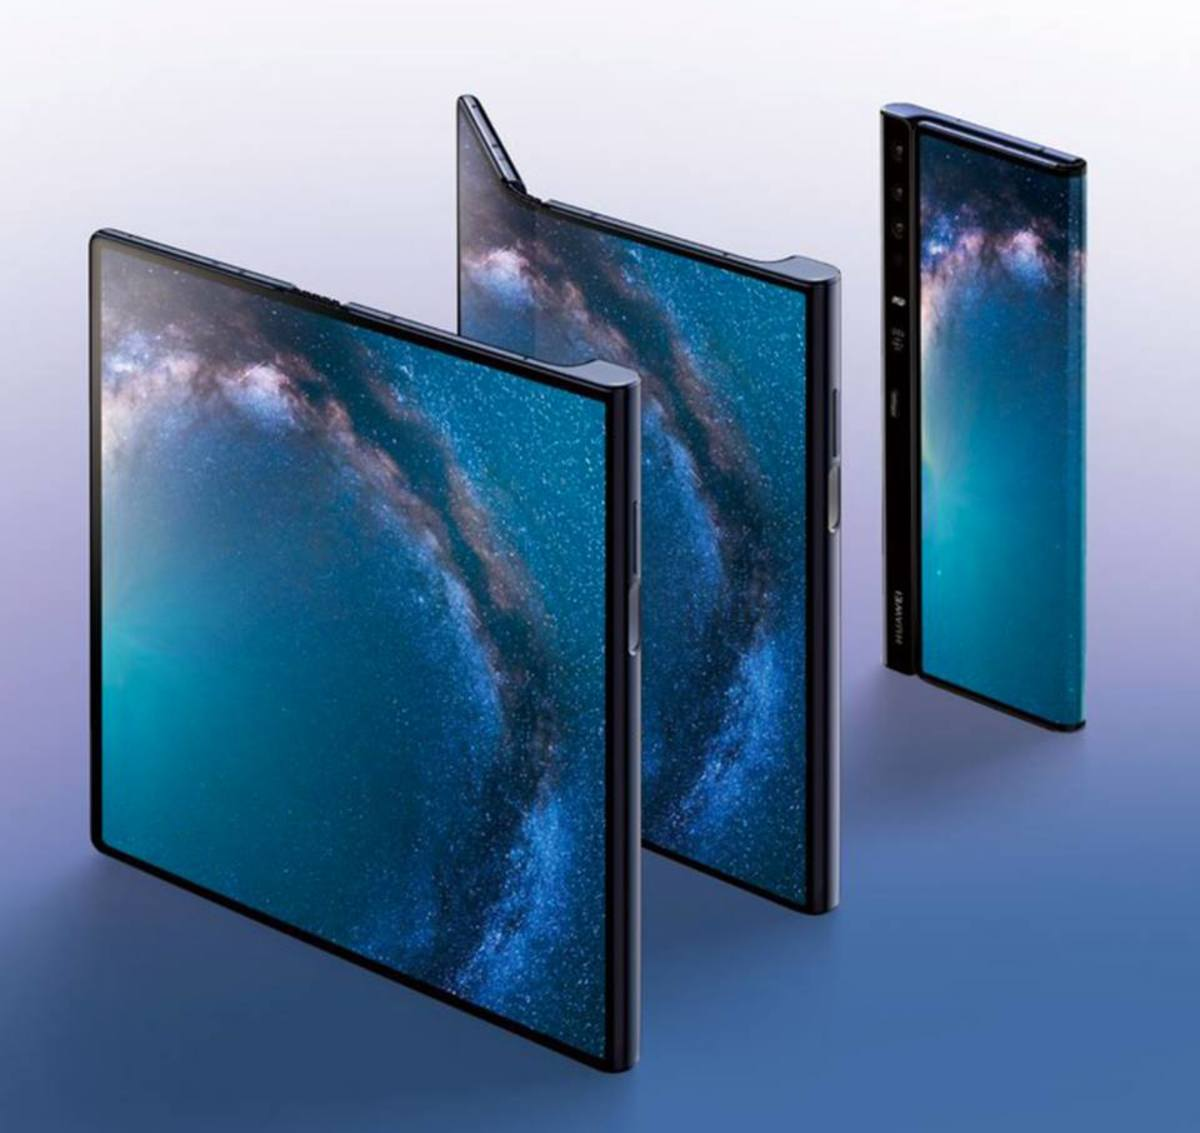 Priced at about 2,600 USD, the Huawei Mate X is a multitasking hybrid device with outstanding performance.